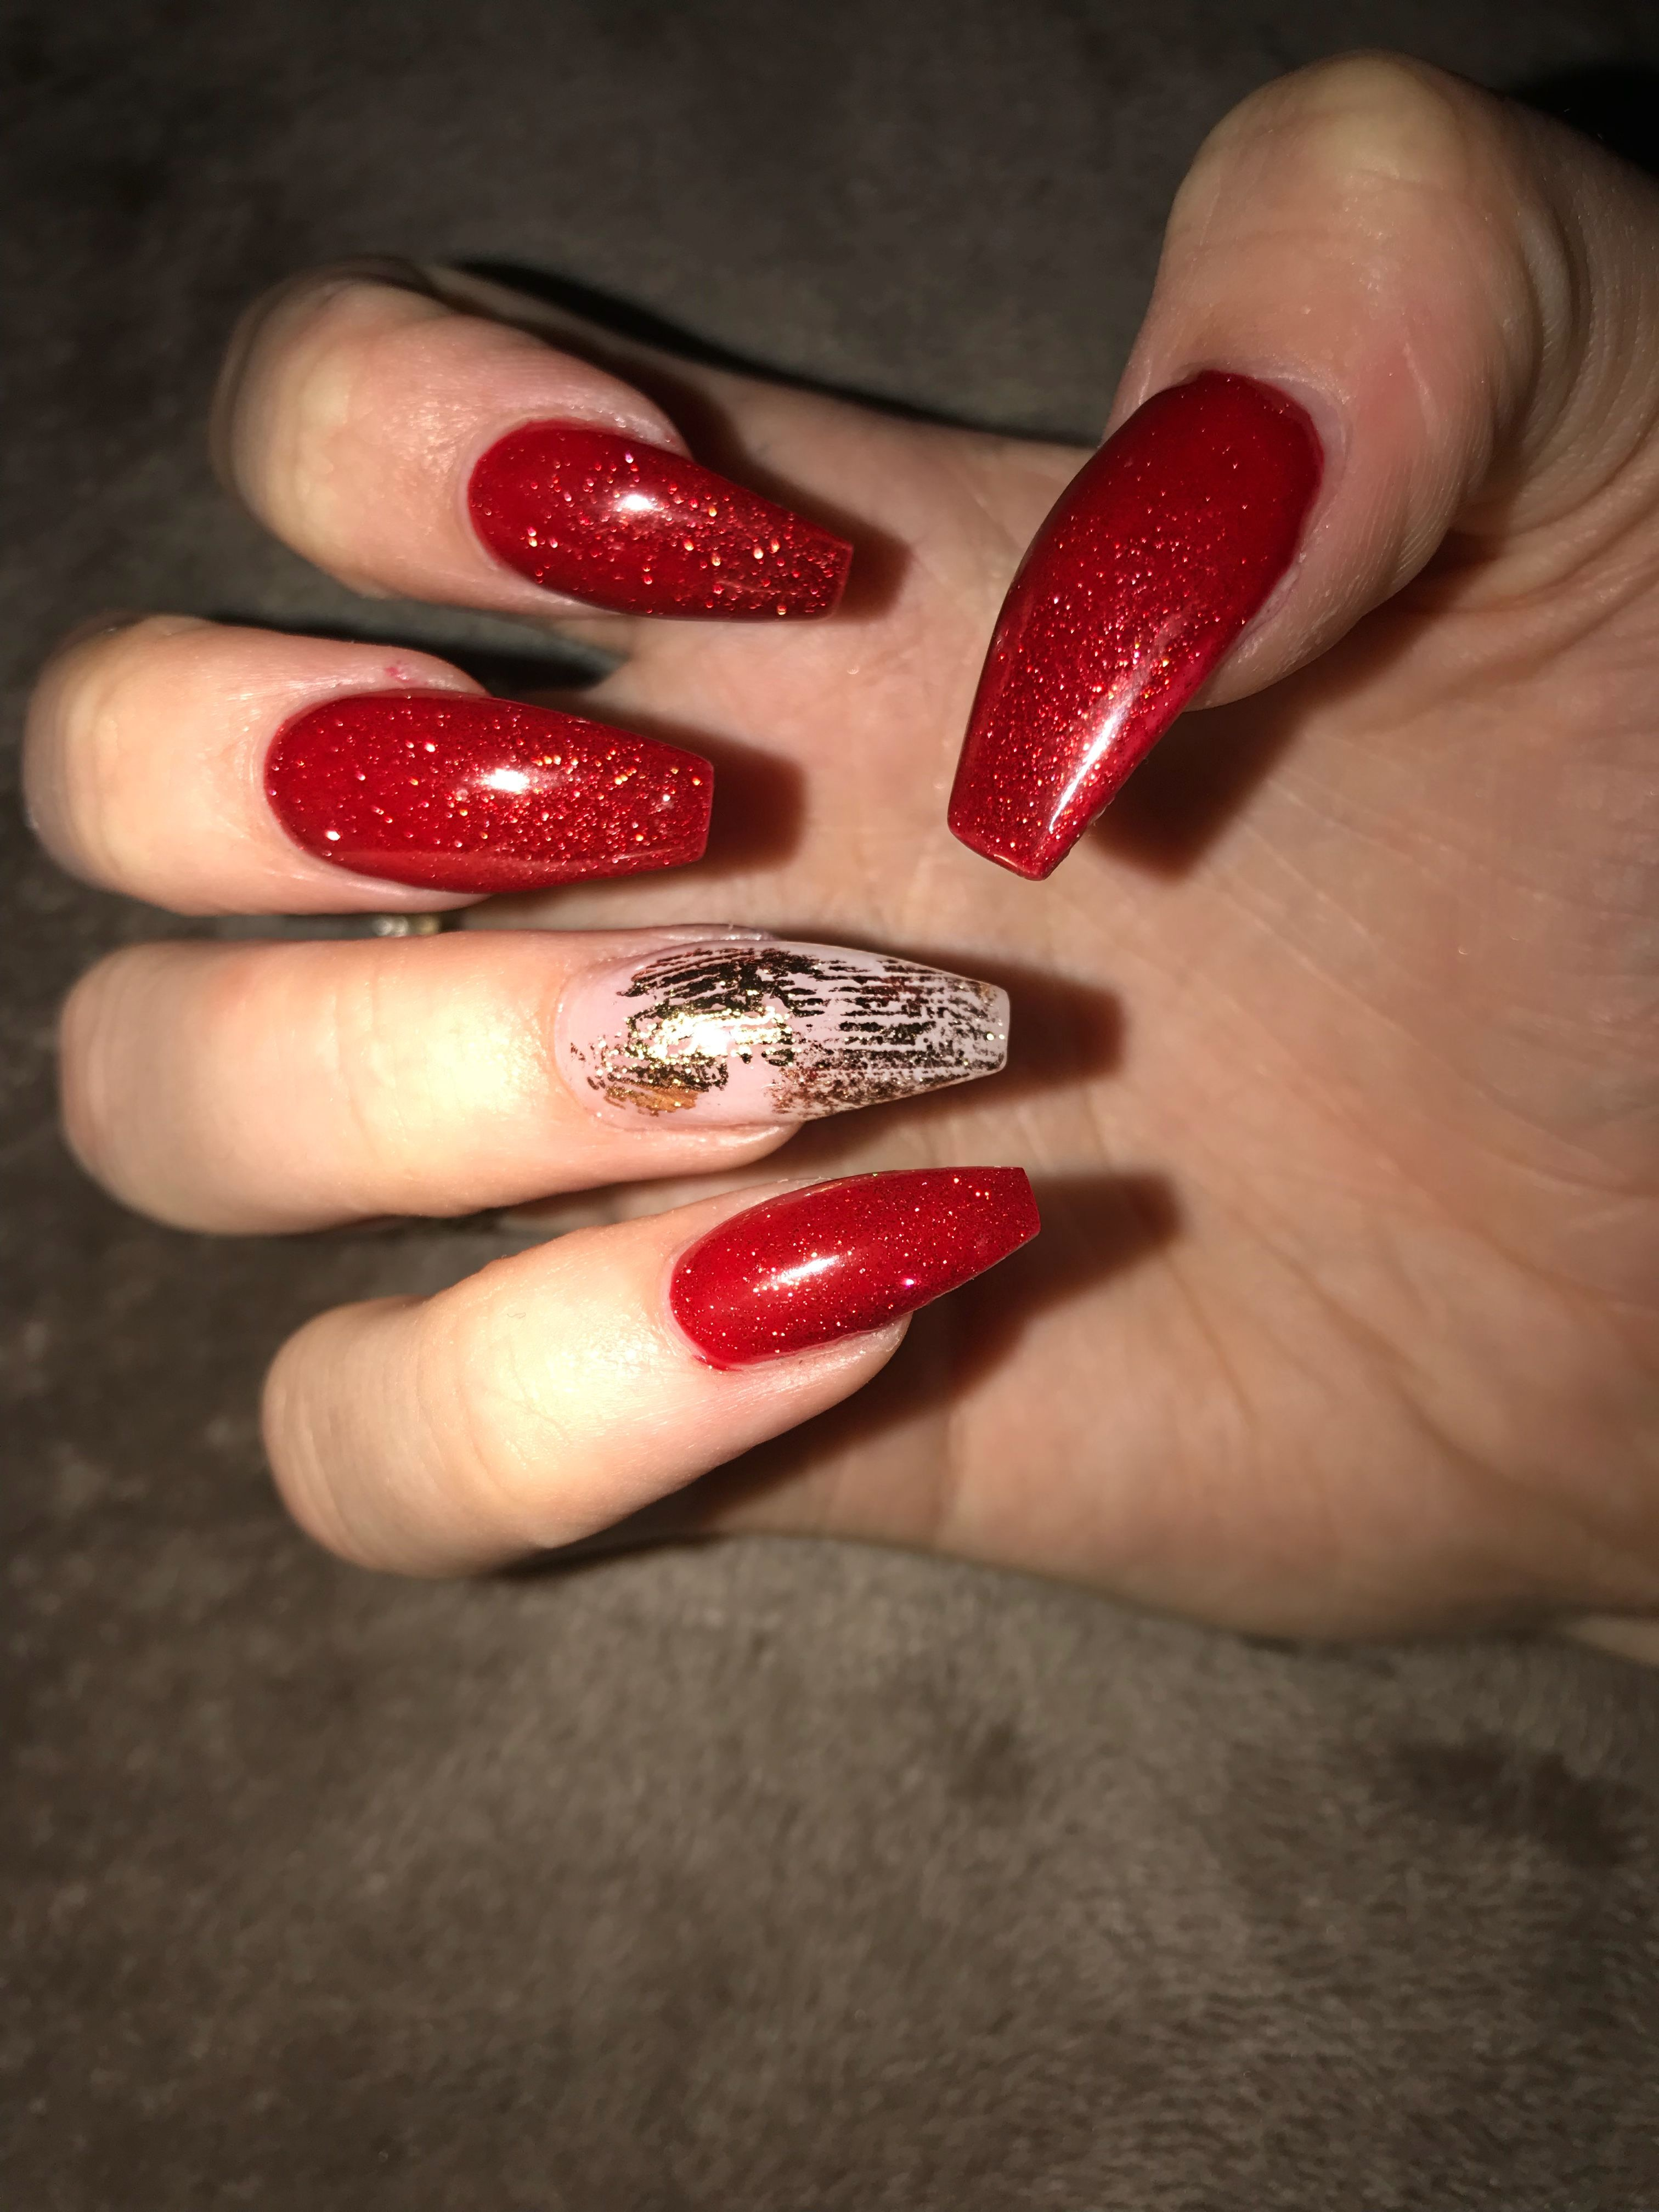 nails acrylics red gold